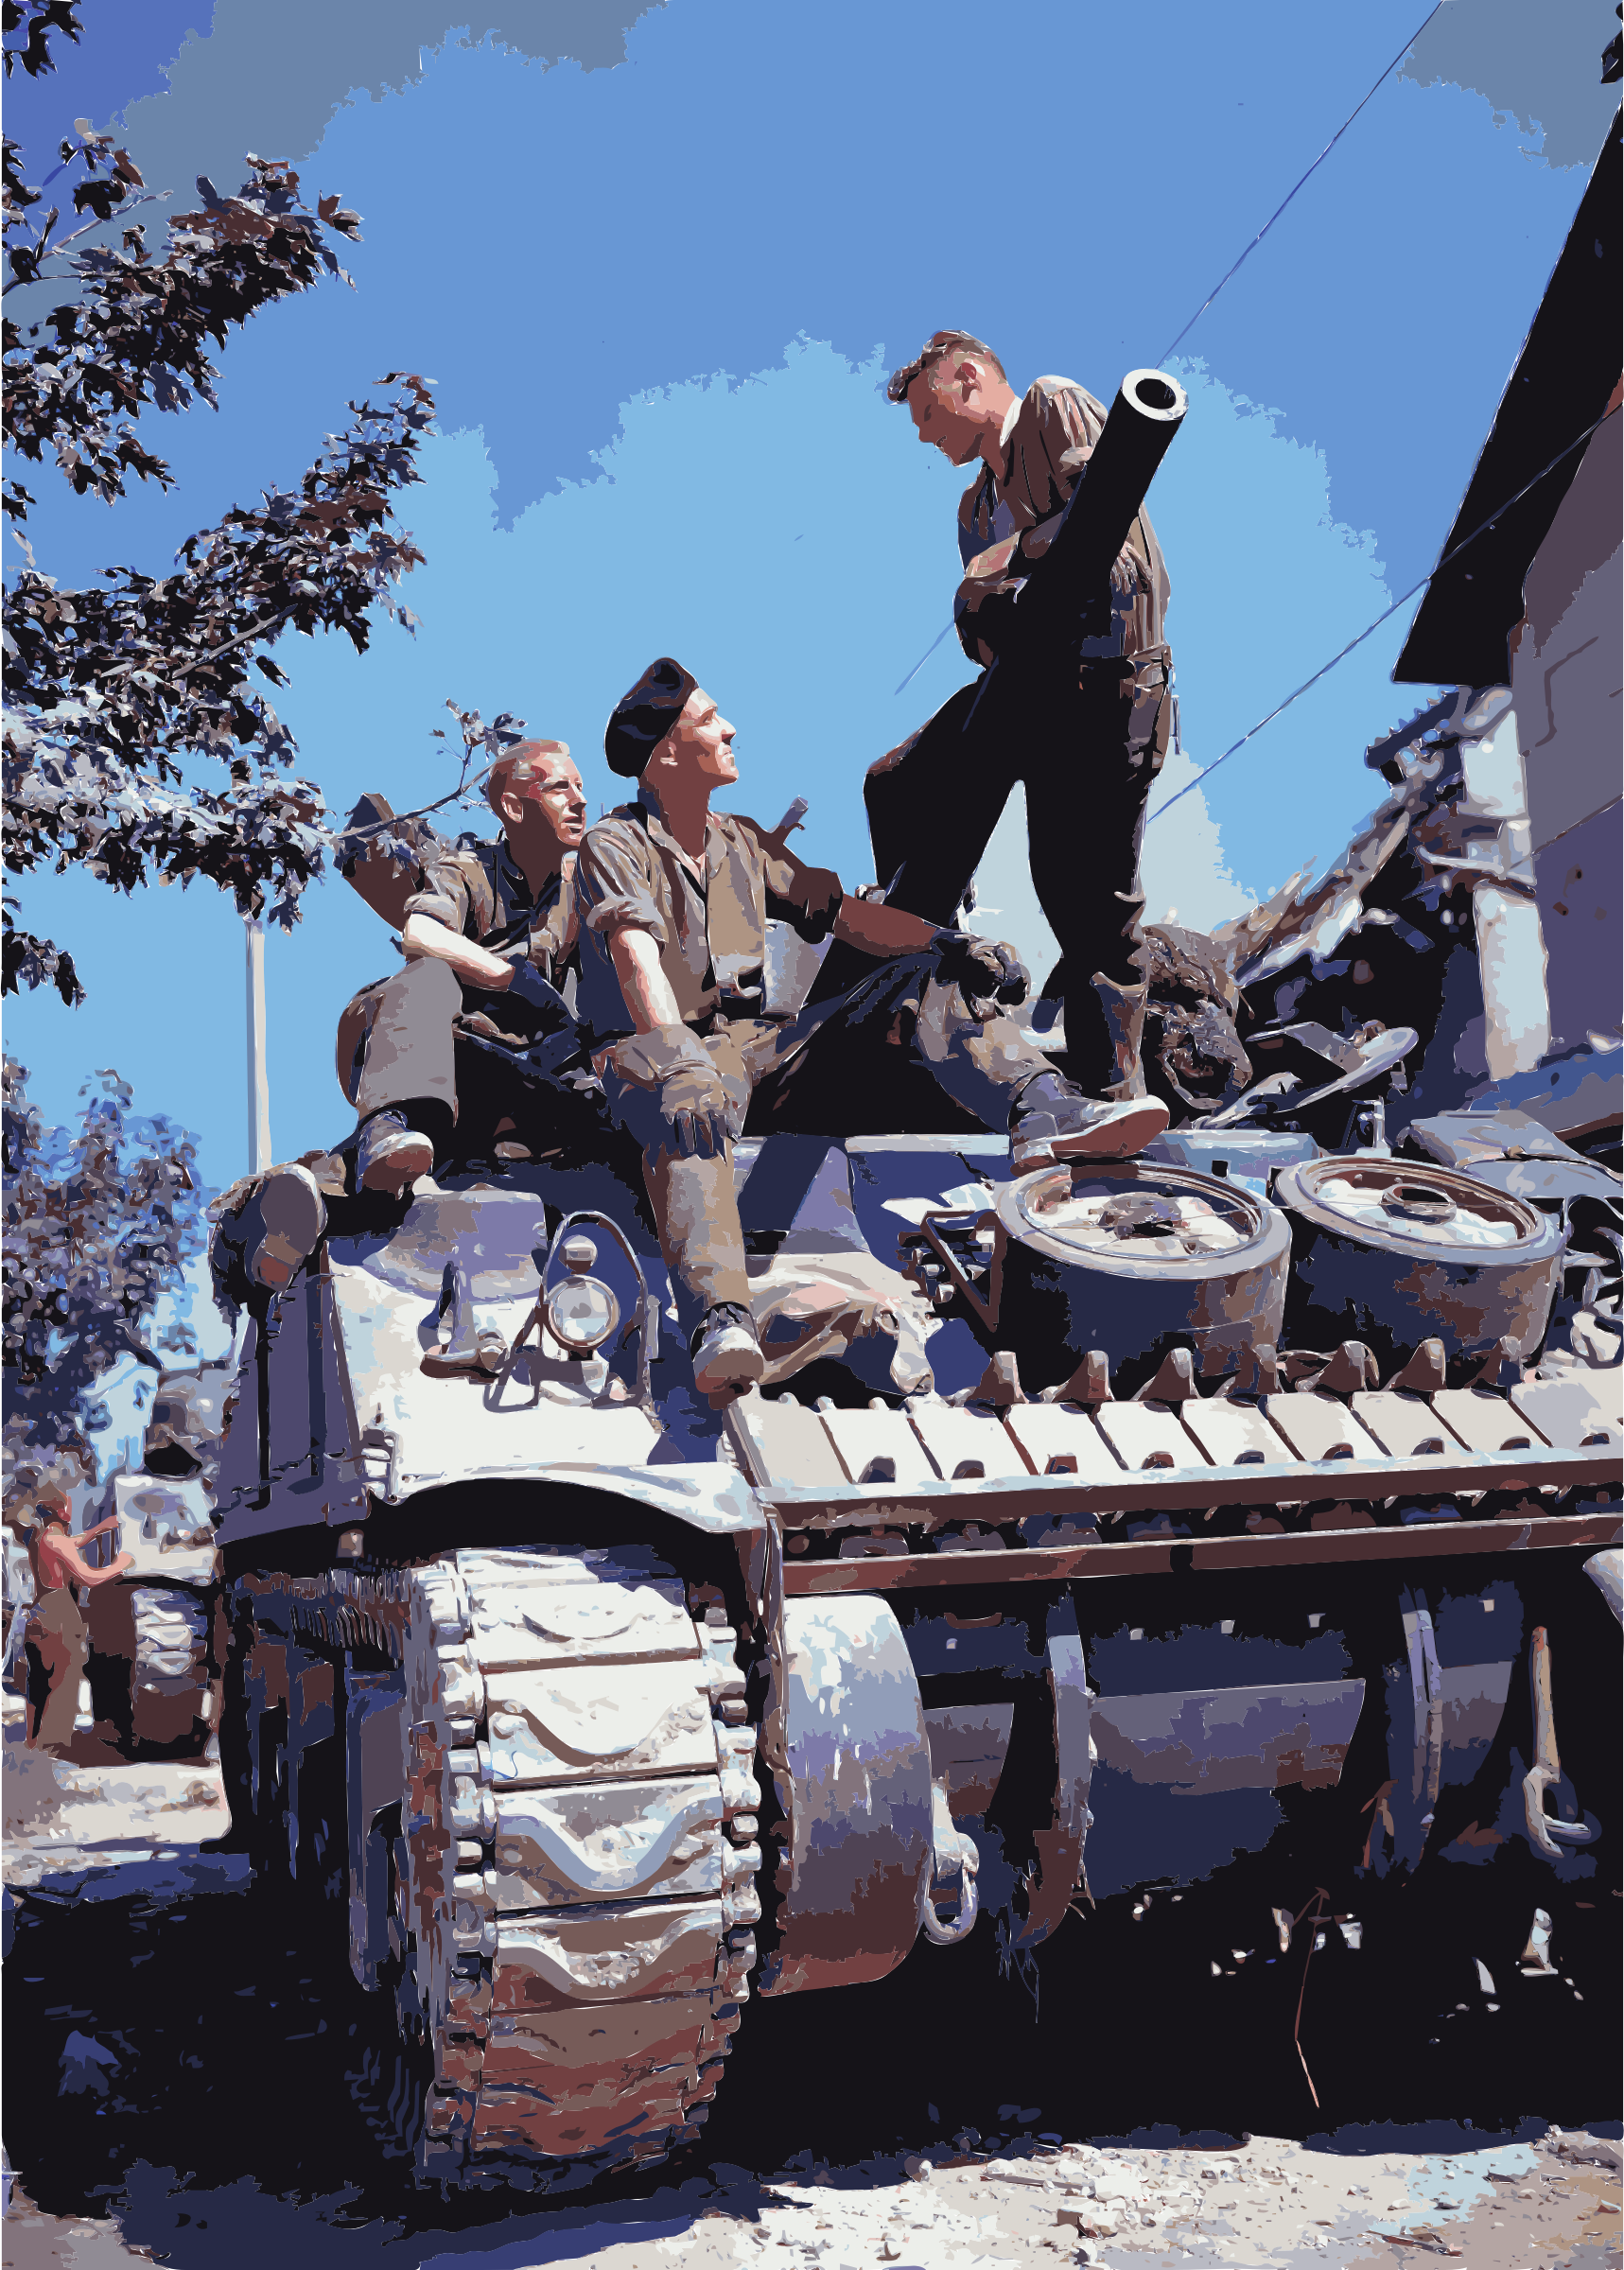 Crew of a Sherman-tank south of Vaucelles by 5nbz3a+45jqtl07aorc